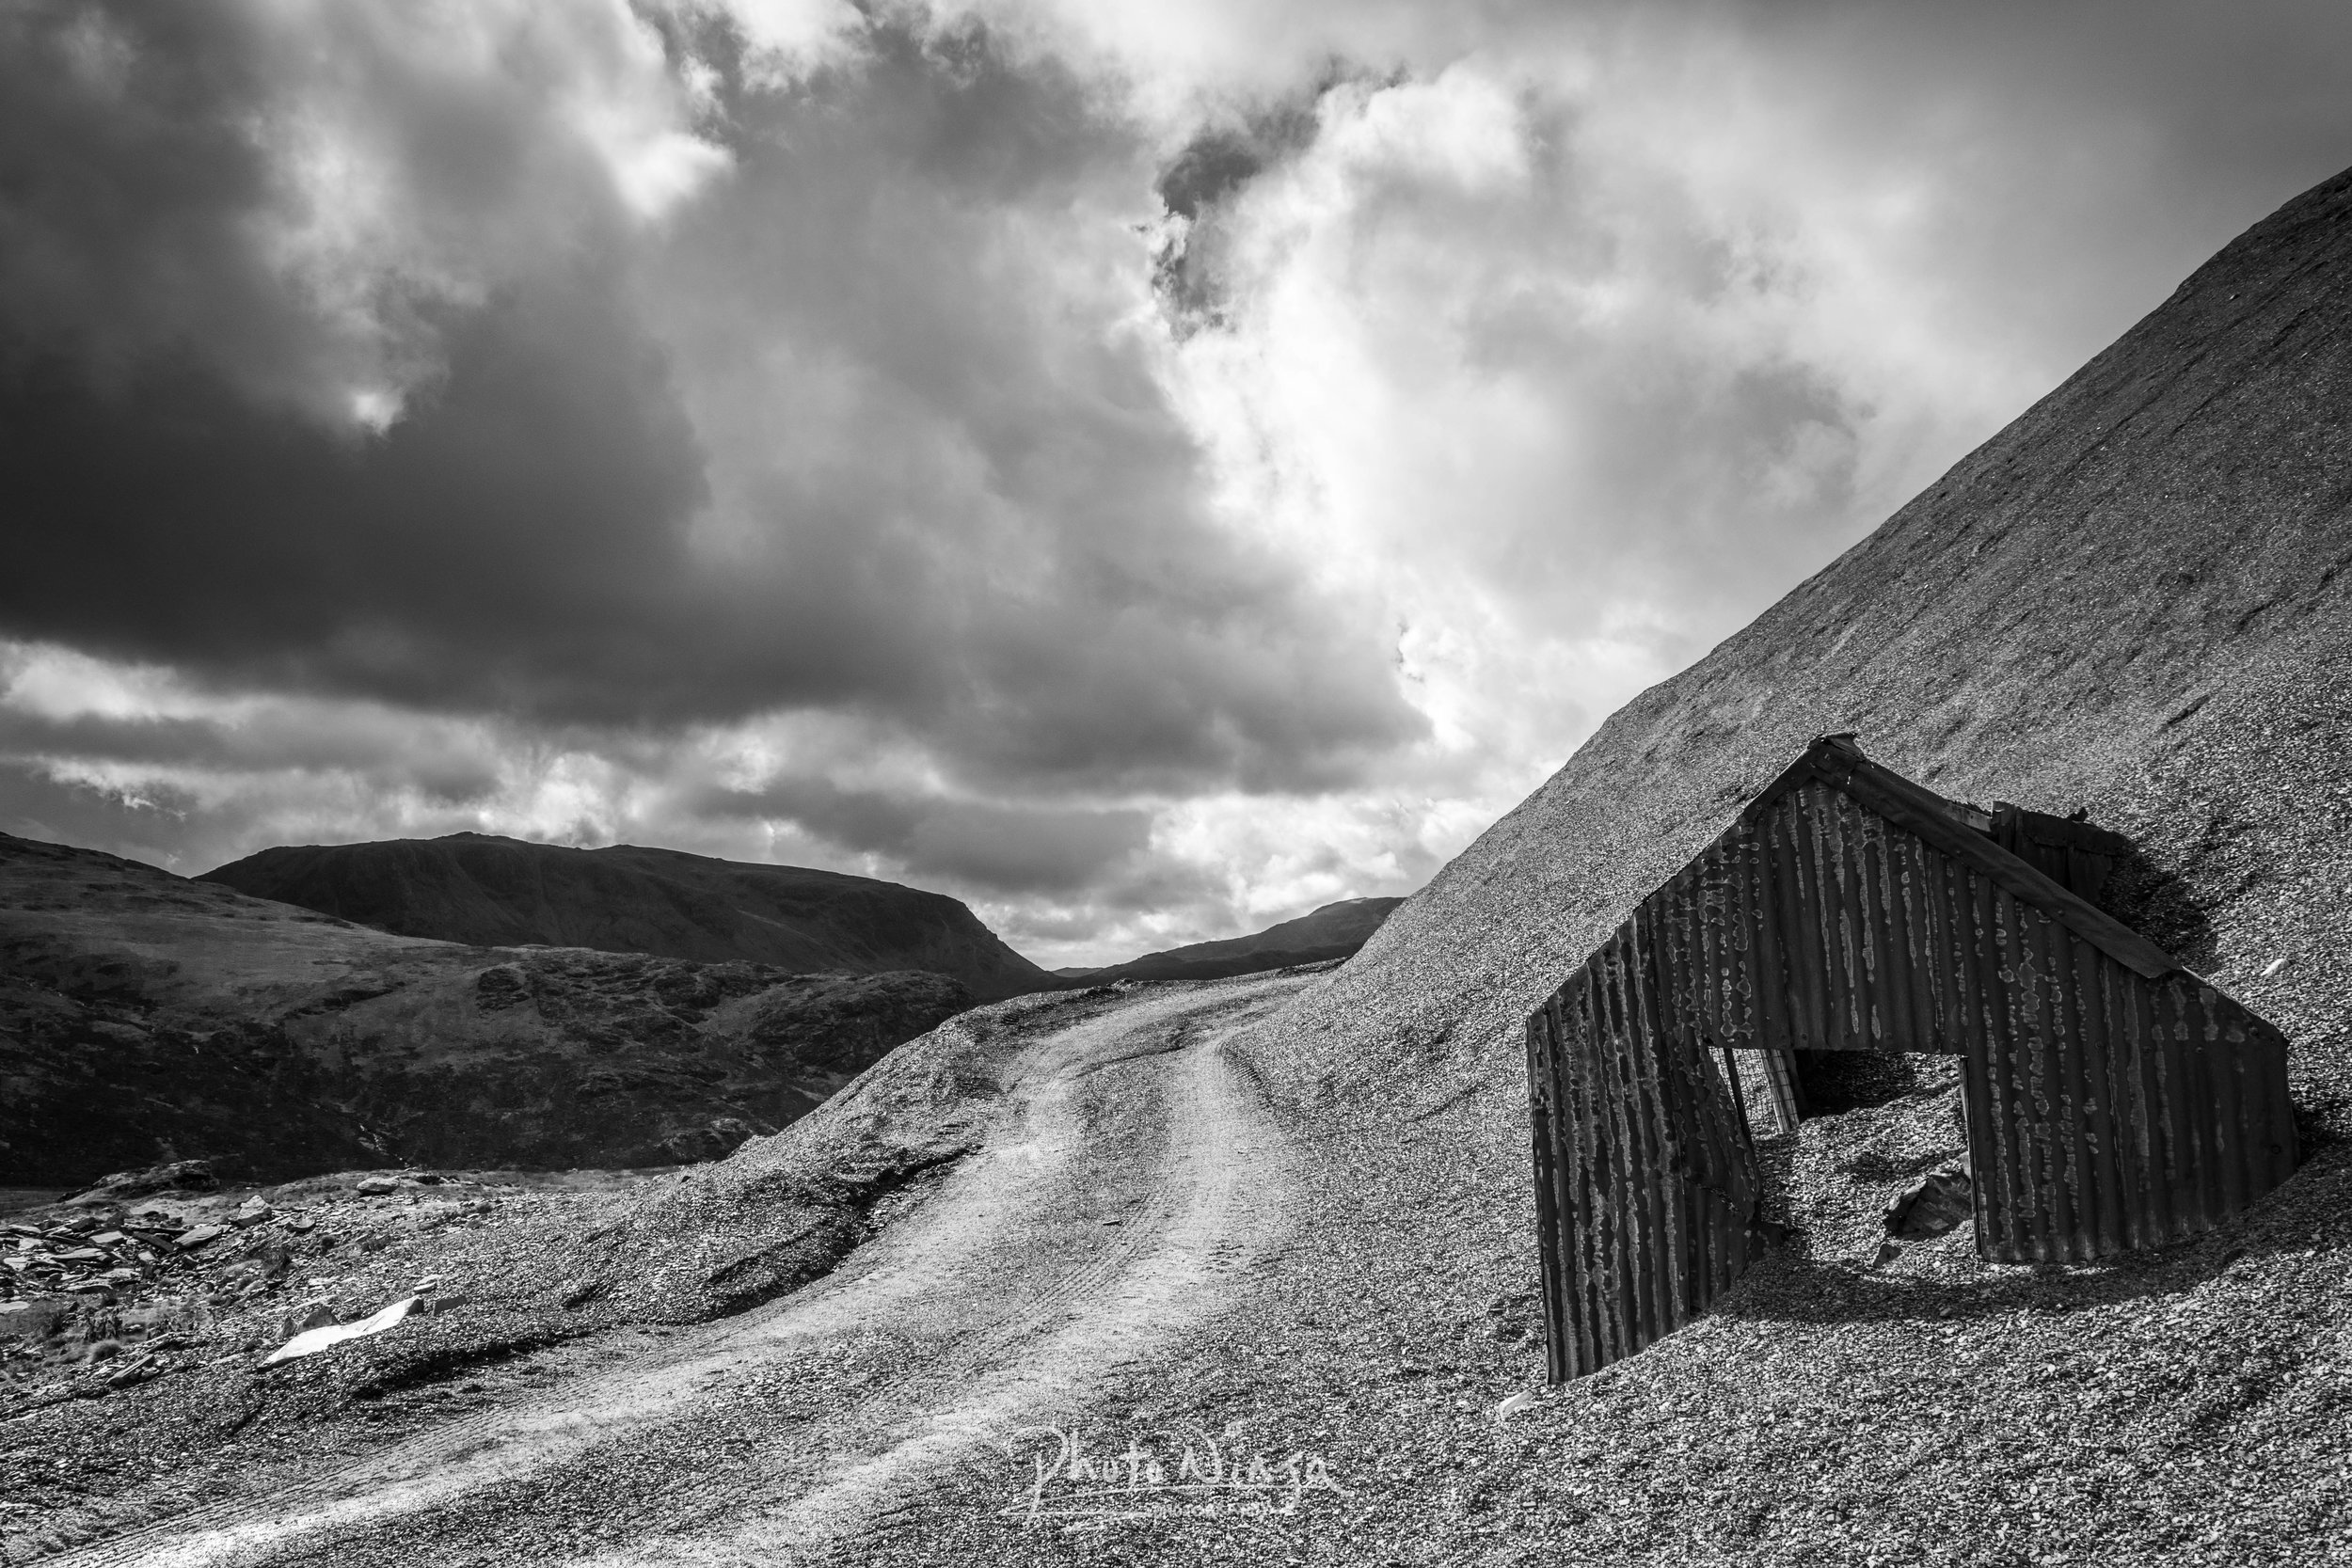 Honister Pass - Whilst on holiday in the lake district, i couldn't resist a trip to Honister slate mine. I use to visit here with my dad and brother, park at the mine and go explore the hills. We set off up the steep winding path with Willow tagging along in the carrier. And it wasn't long before i found my first composition.